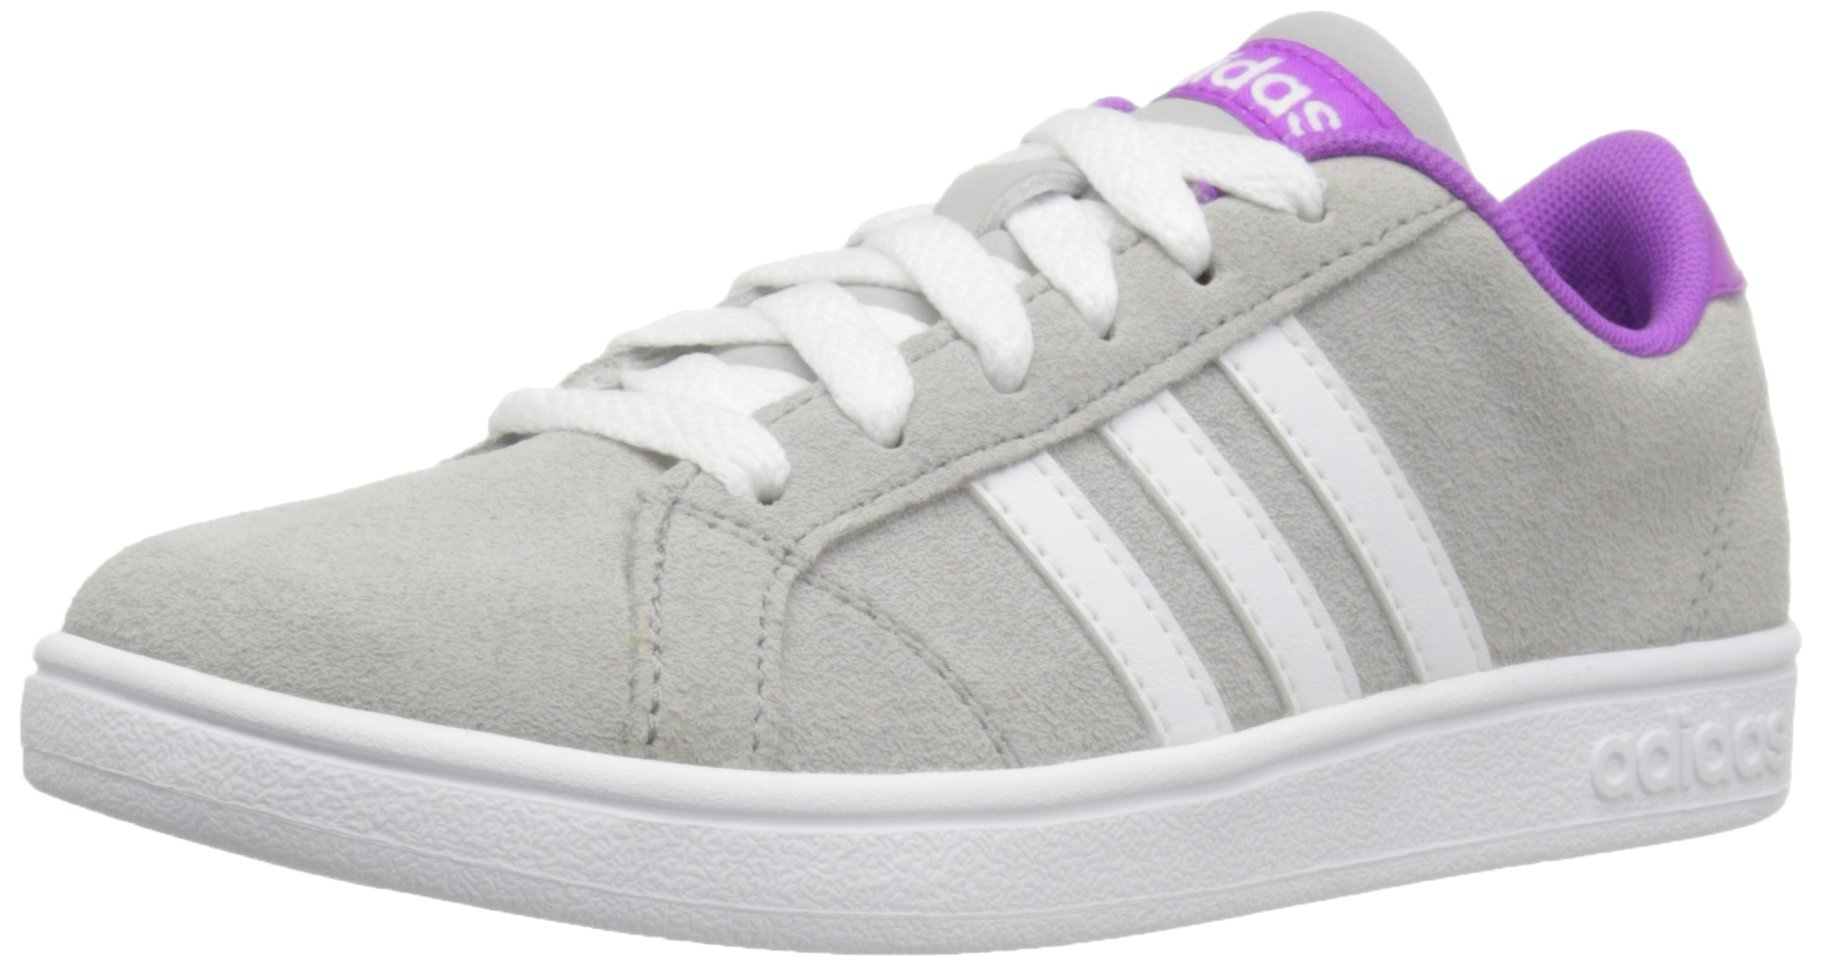 factory authentic fae7c 7912f Galleon - Adidas Originals Girls  Baseline Sneaker, Clear Onix White Shock  Purple Fabric, 11.5 M US Little Kid